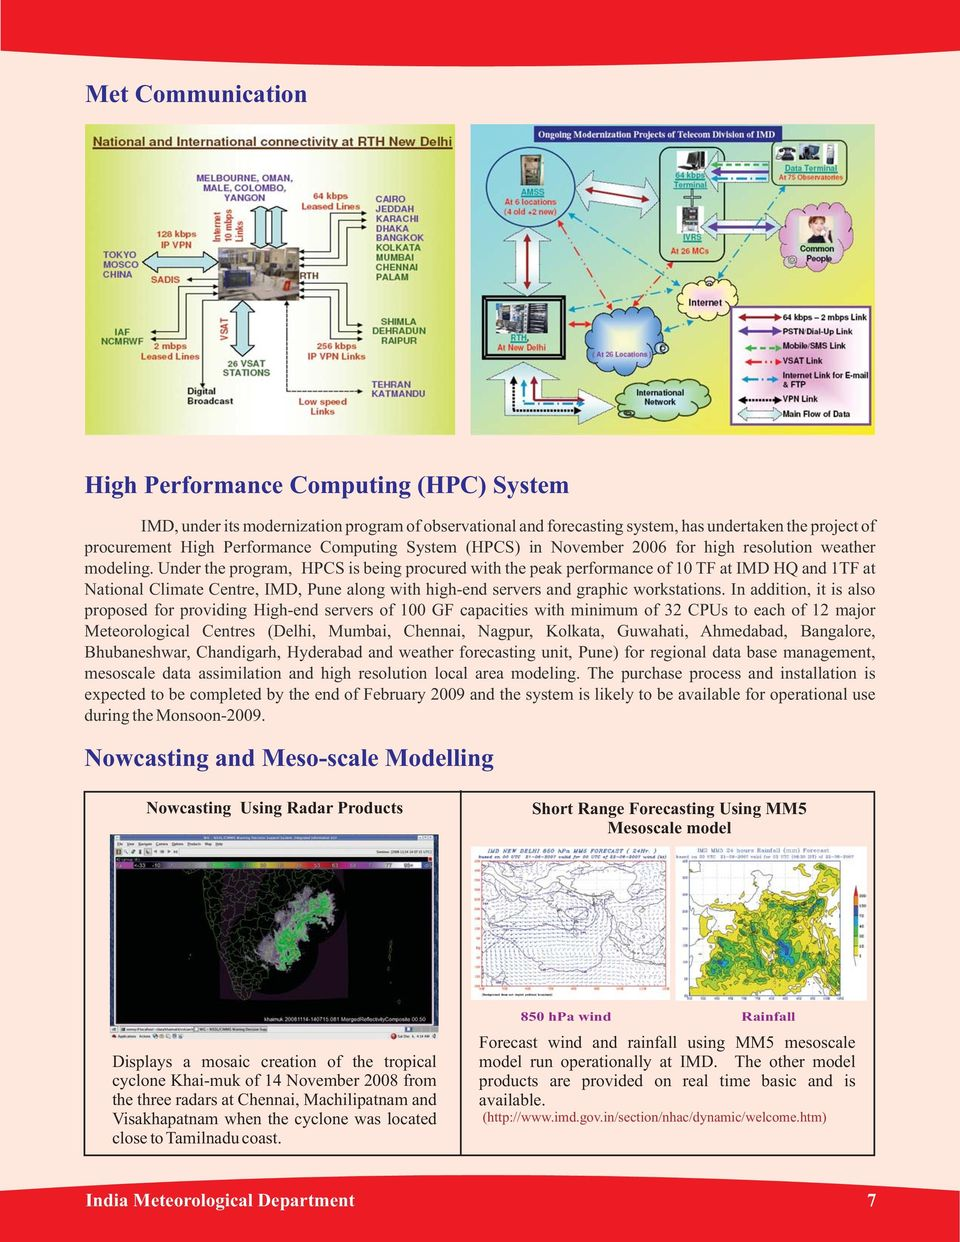 Under the program, HPCS is being procured with the peak performance of 10 TF at IMD HQ and 1TF at National Climate Centre, IMD, Pune along with high-end servers and graphic workstations.